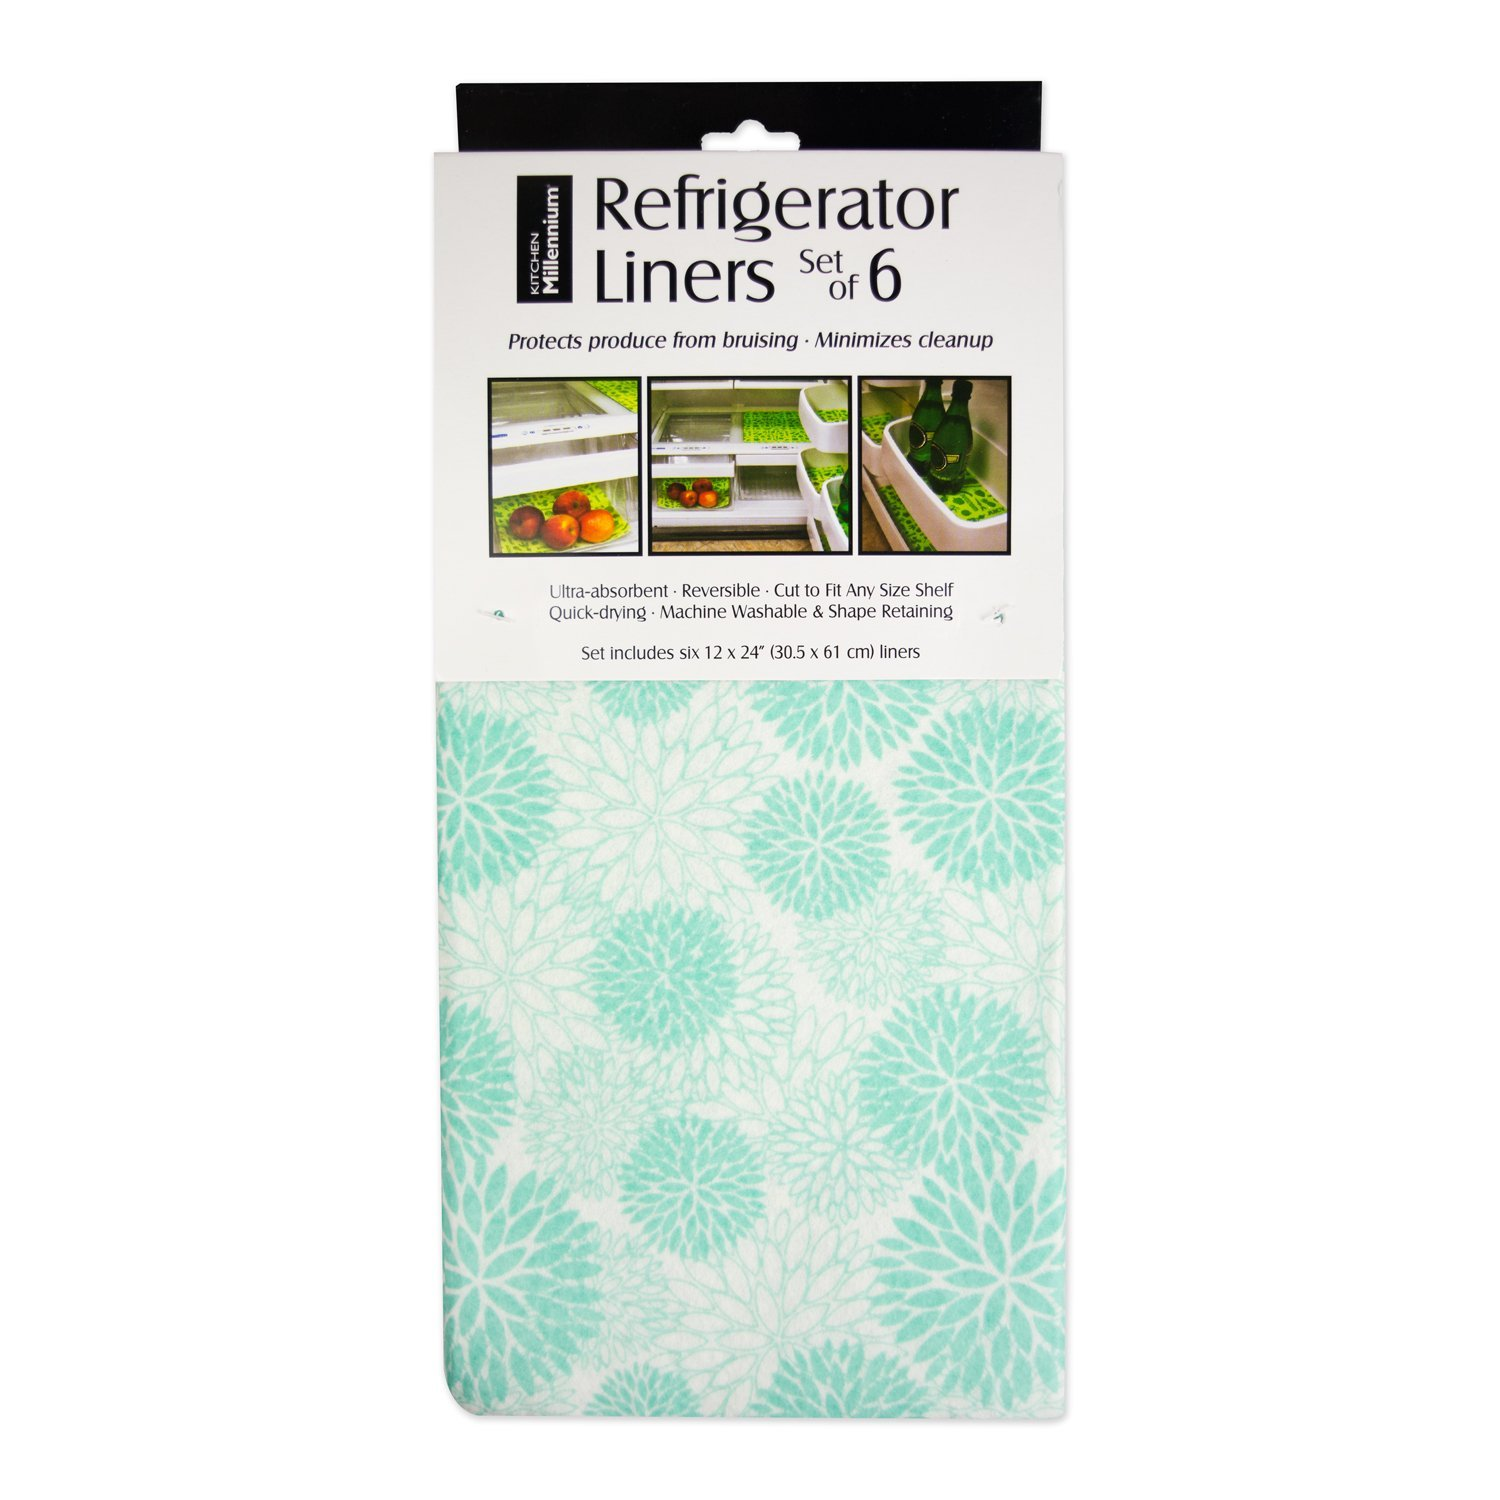 "DII Non Adhesive Cut to Fit Machine Washable Fridge Liner For Drawers, Bins, Trays, Protect Produce, Set of 6, 12 x 24"" - Aqua Dahlia"